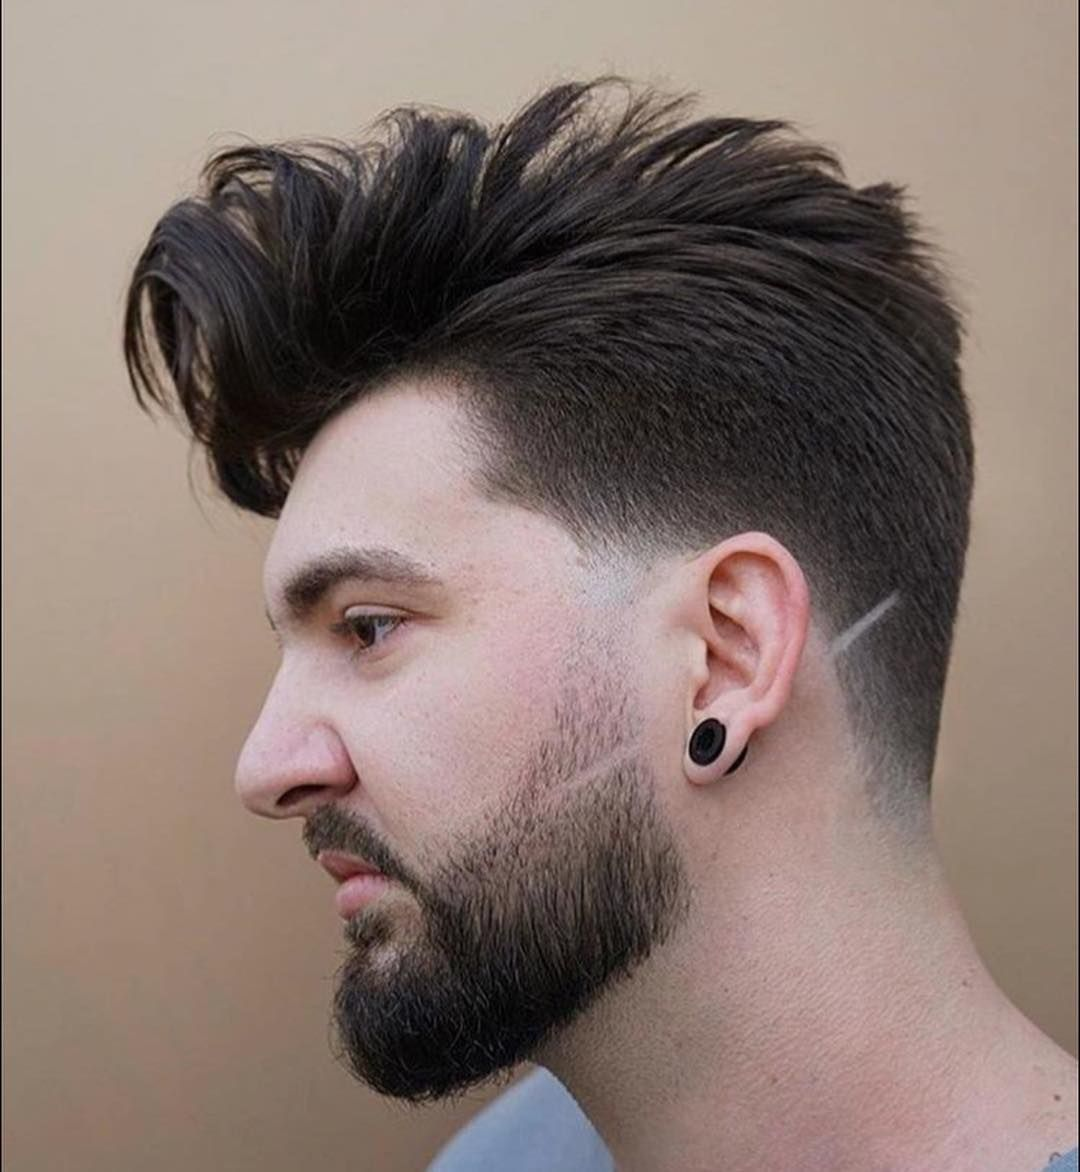 Barber Barbergang Barberlove Barbernation Barbers Barbershop Barberworld Berber Coolhair Erkekg Mens Hairstyles Short Mens Hairstyles Beard Hairstyle